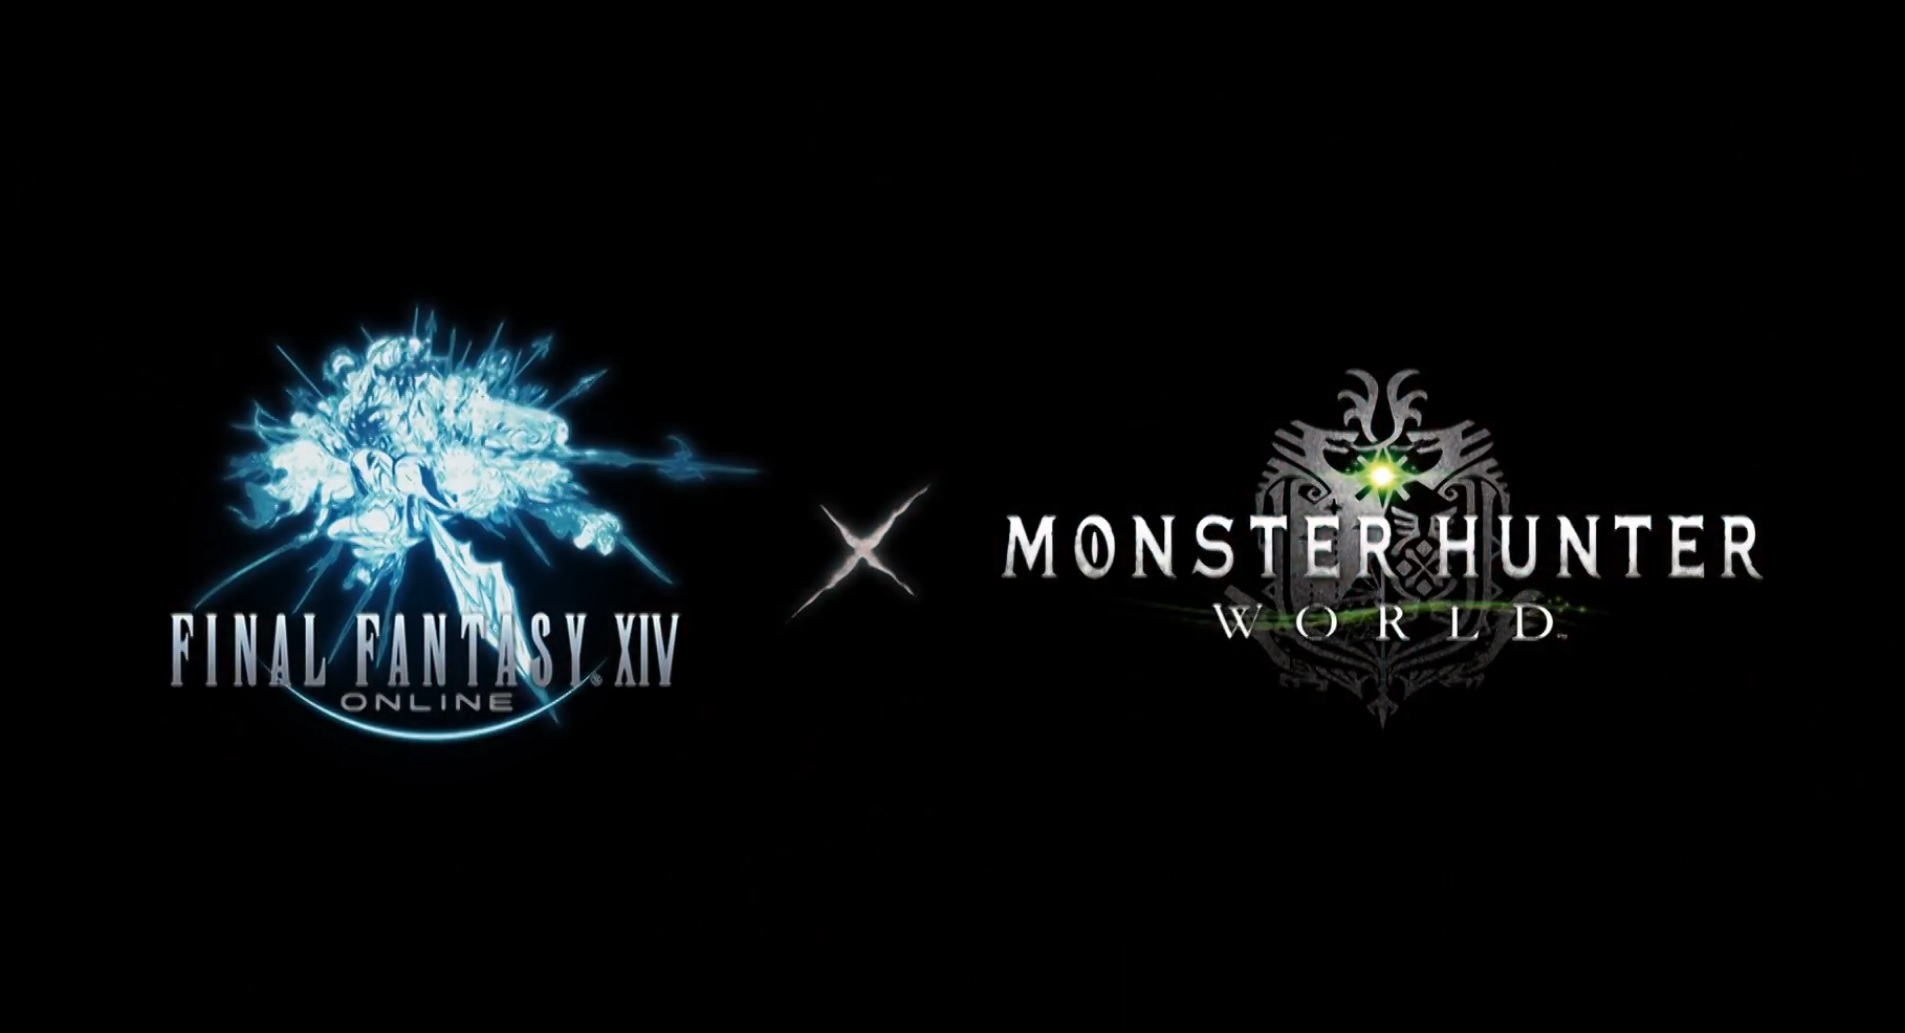 Final Fantasy XIV Online X Monster Hunter World